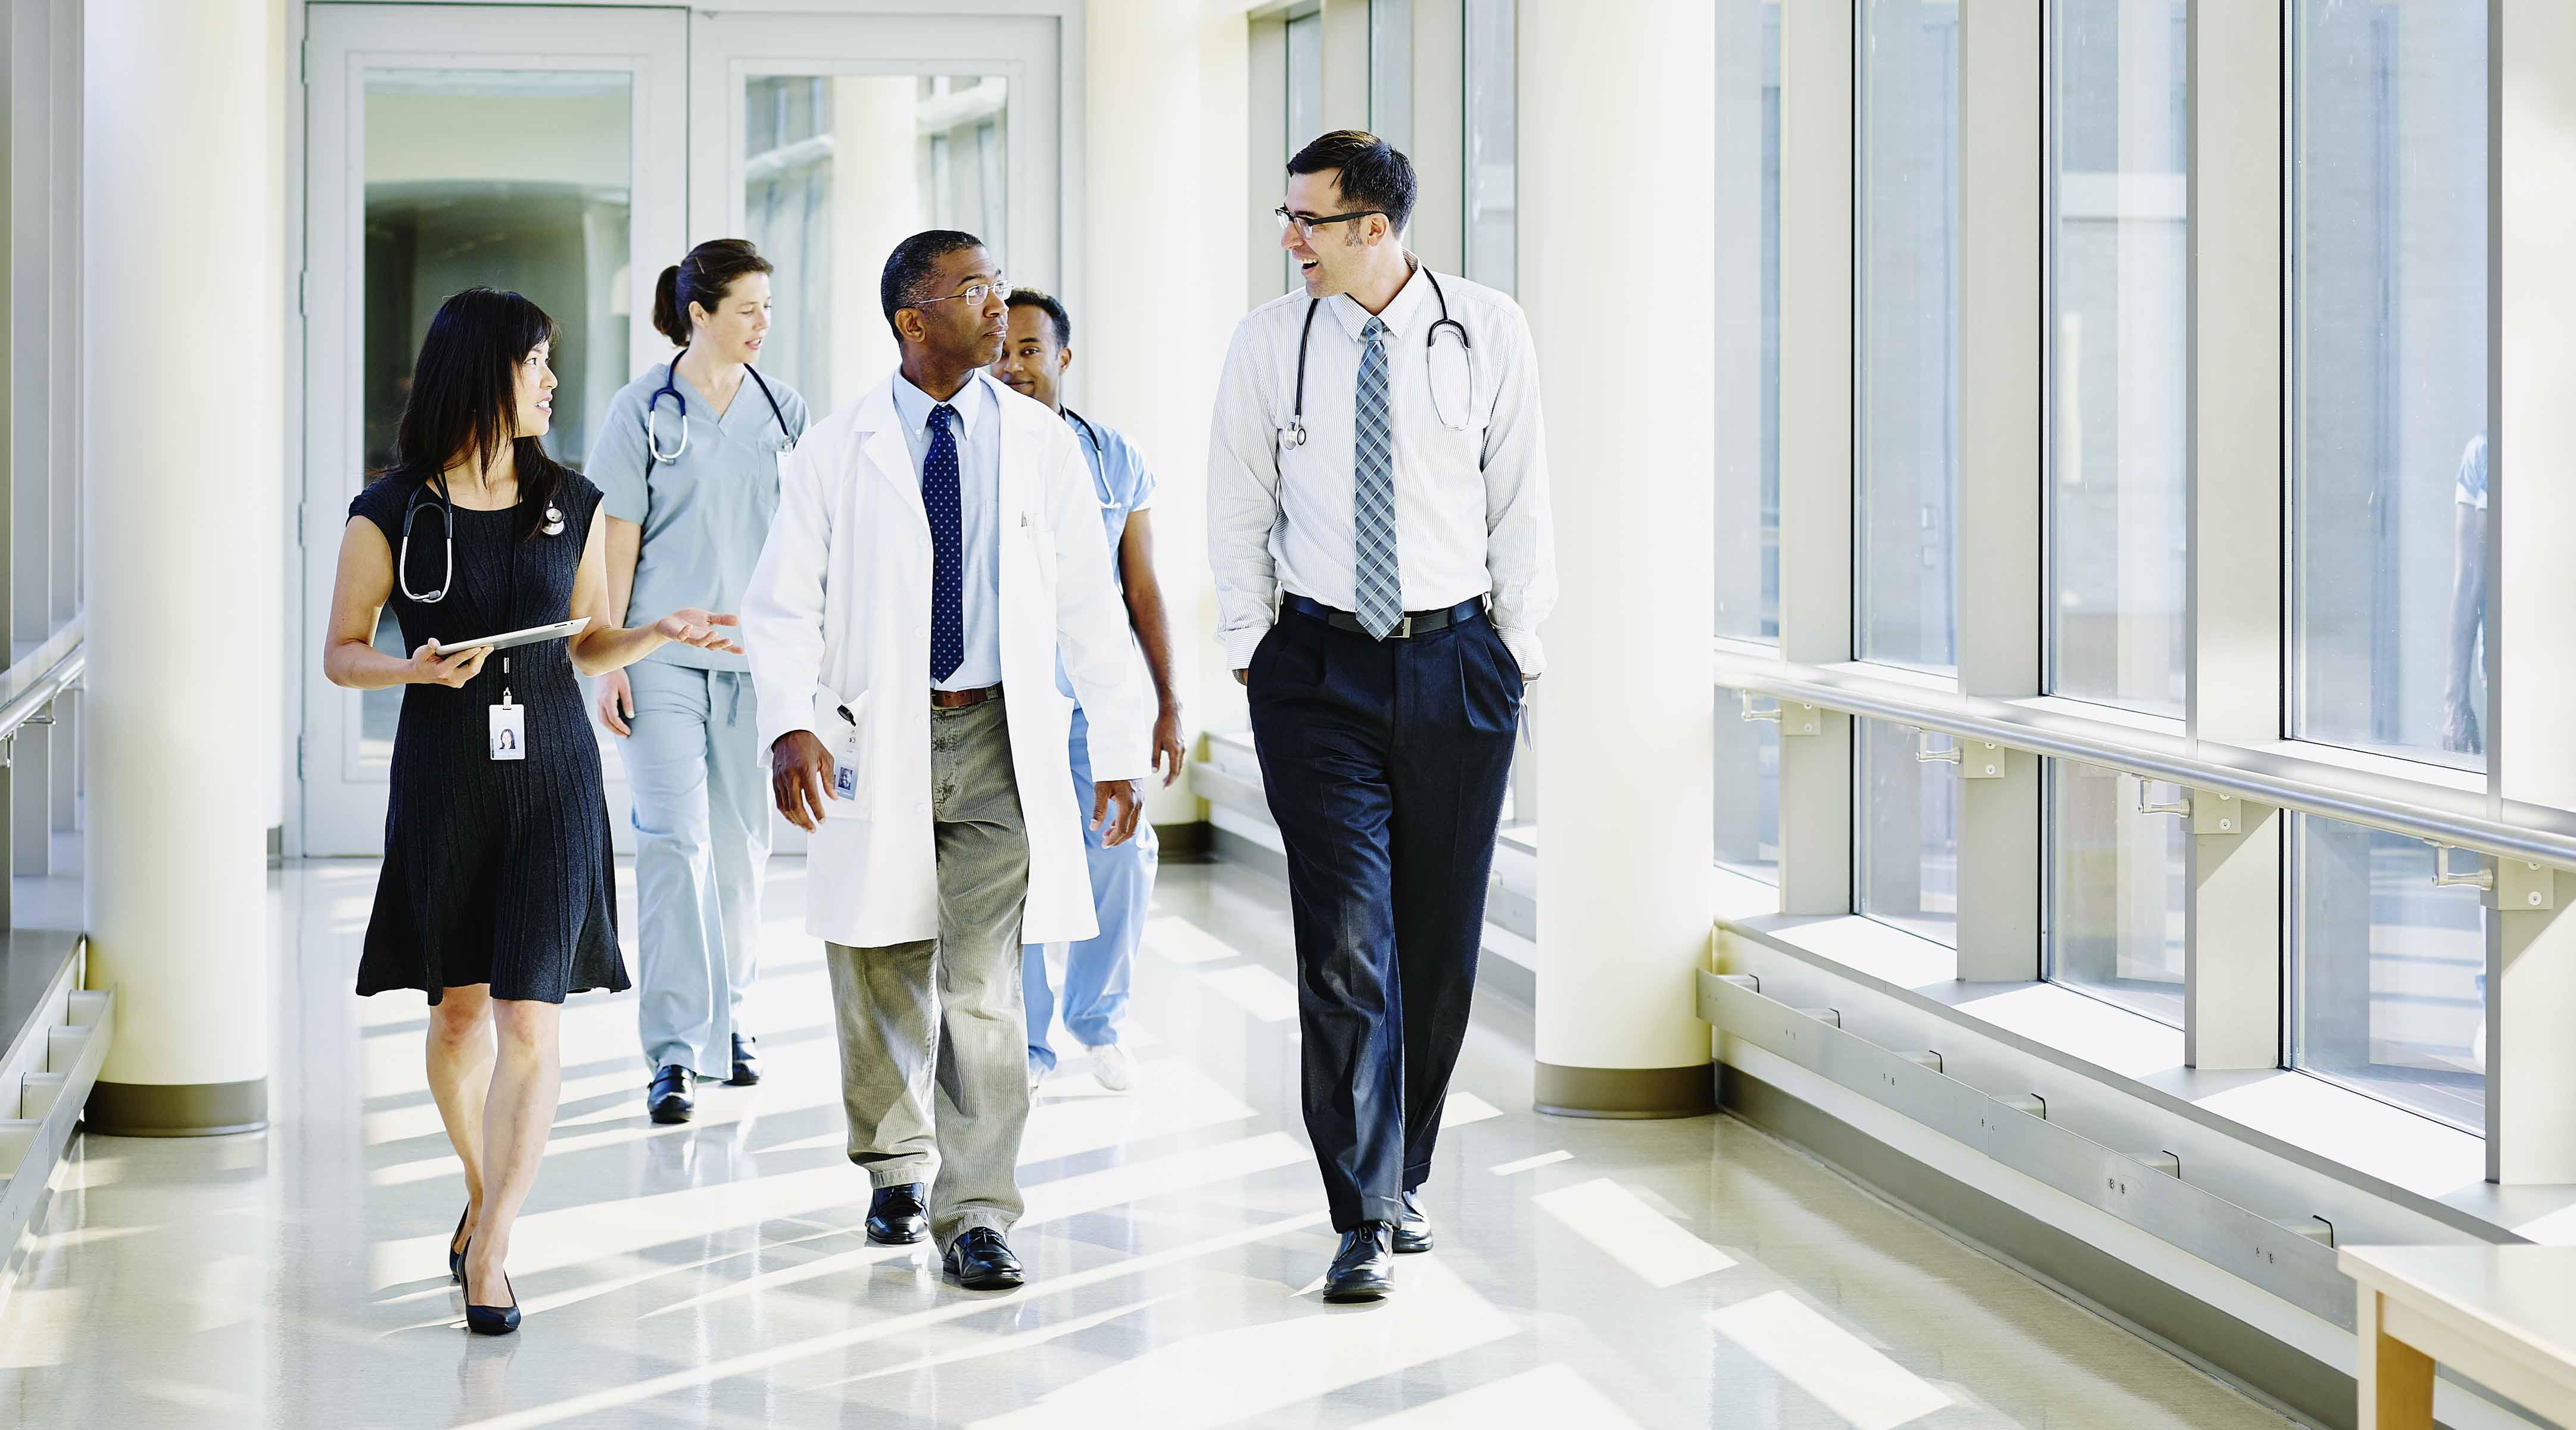 A group of doctors have a conversation while walking down a hallway.